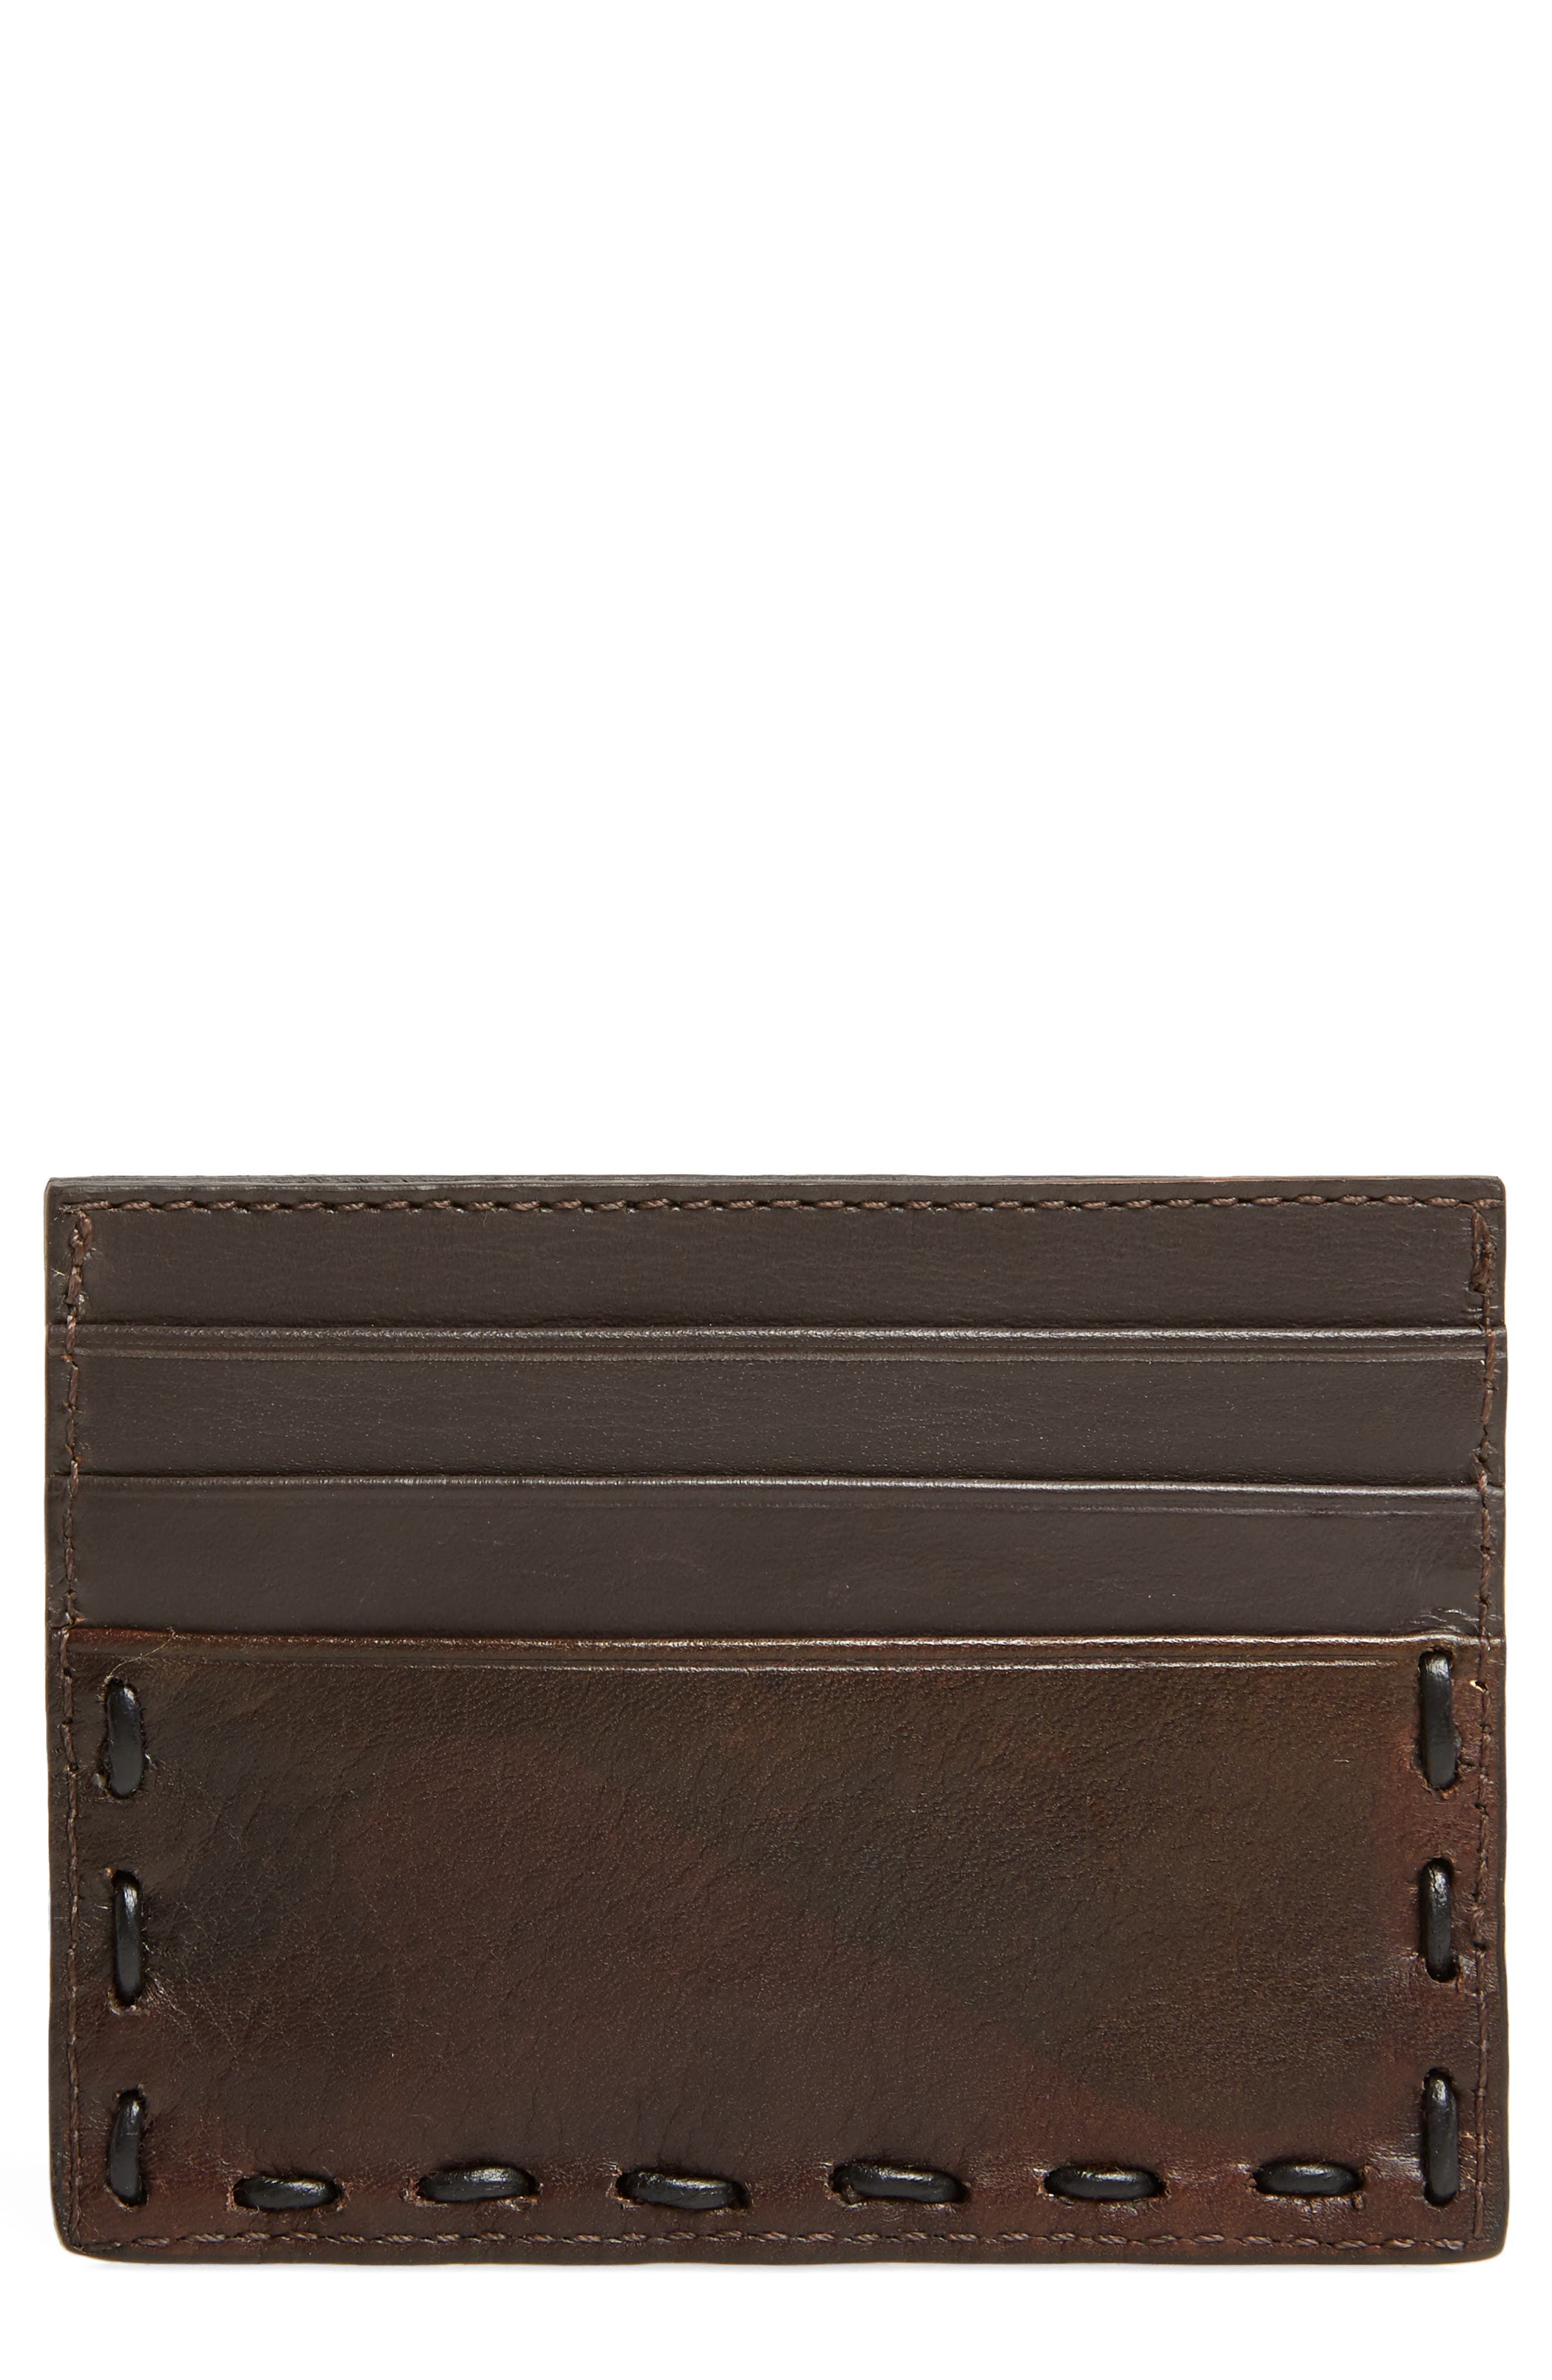 Pickstitched Leather Card Case,                             Main thumbnail 1, color,                             Distressed Brown